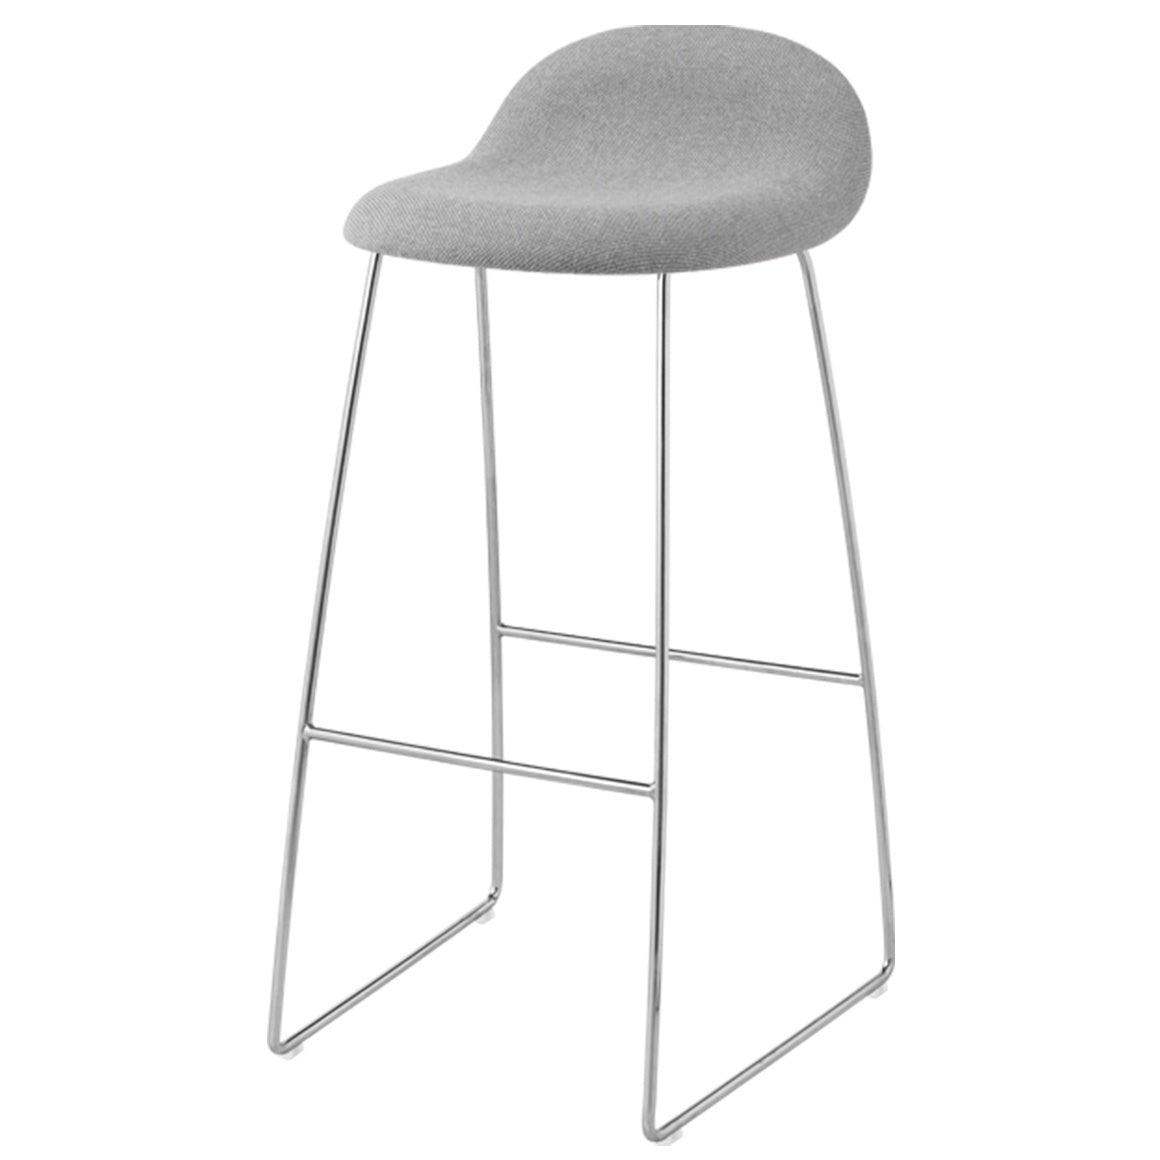 GUBI 3 STOOL-CHROME BASE - Eclectic Cool  - 15